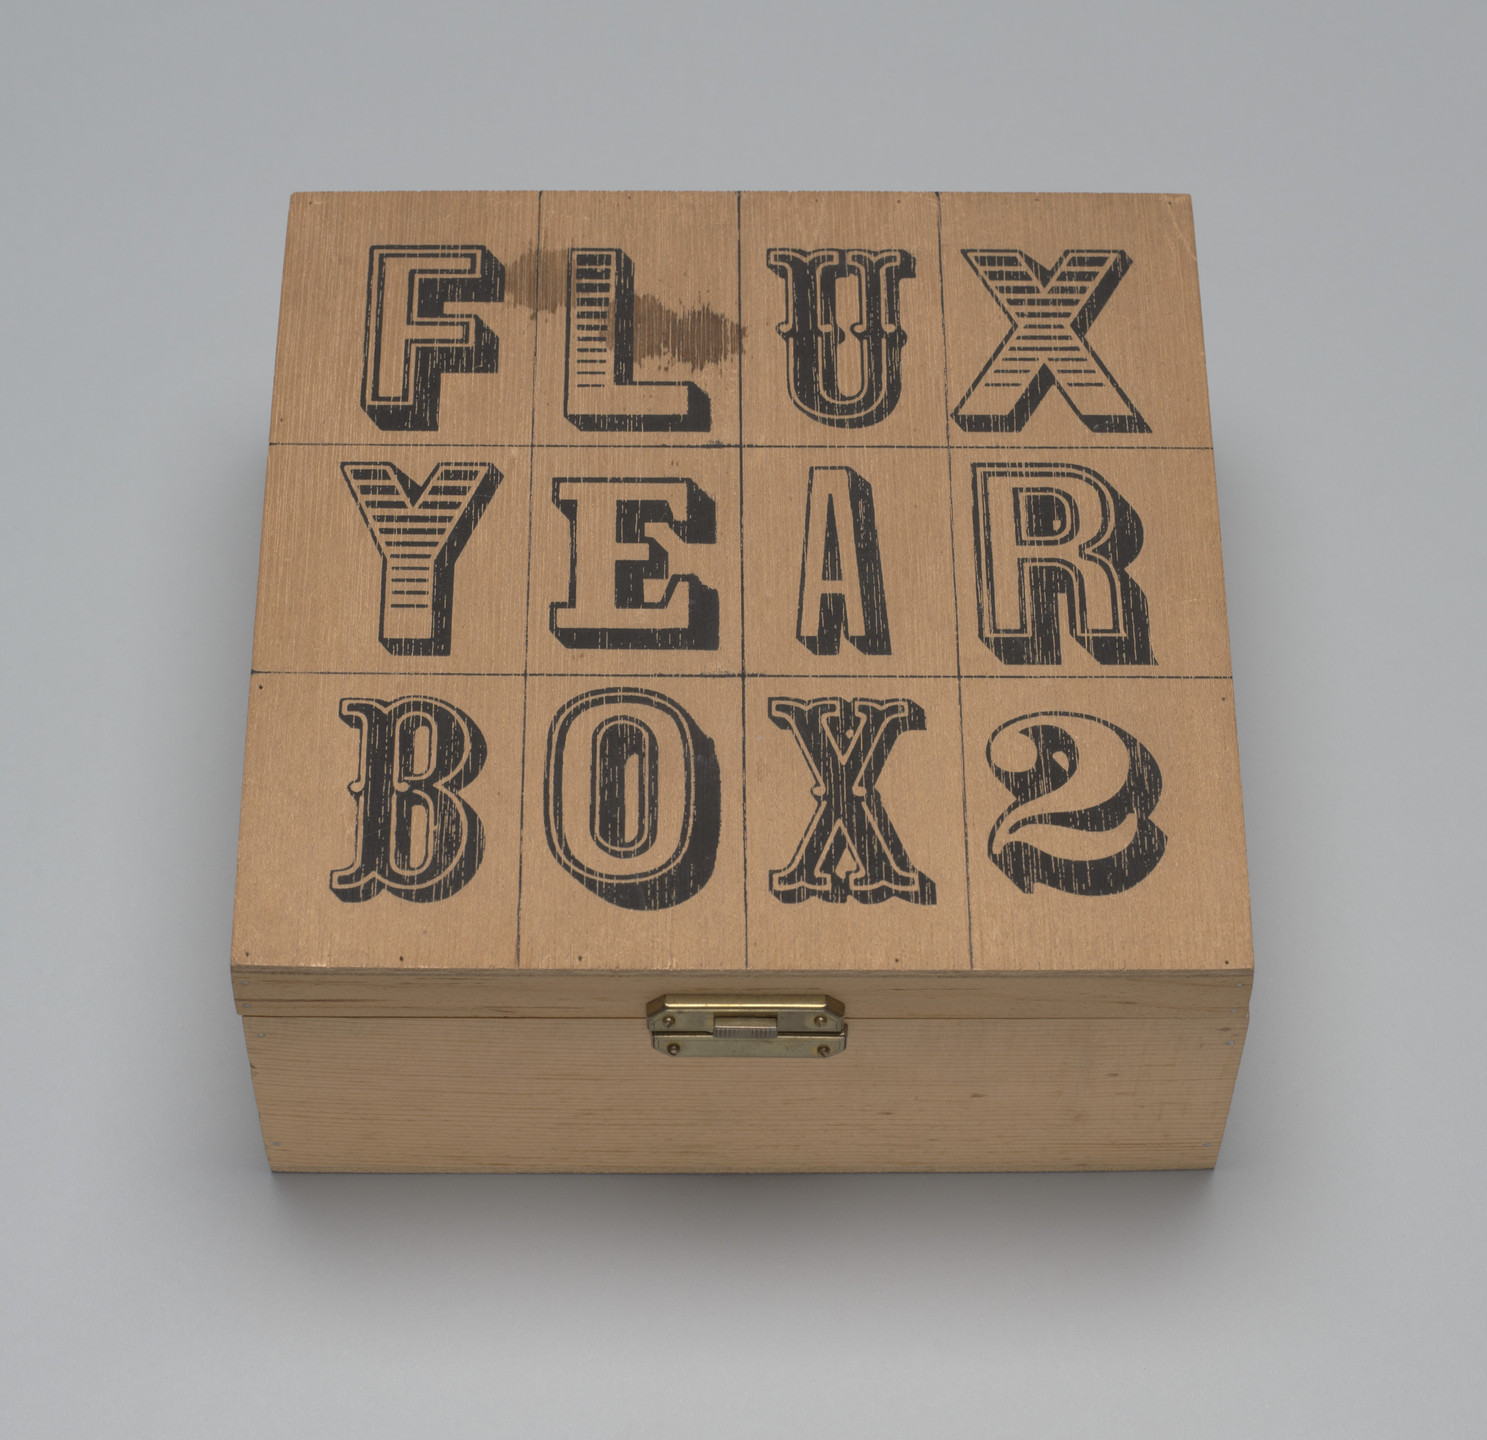 Various Artists, George Brecht, Willem de Ridder, Albert M. Fine, Ken Friedman, Shigeko Kubota, Frederic Lieberman, George Maciunas, Serge Oldenbourg, Benjamin Patterson, James Riddle, Paul Sharits, Bob Sheff, Daniel Spoerri, Stan VanDerBeek, Ben Vautier, Robert Watts. Flux Year Box 2. 1966/1978